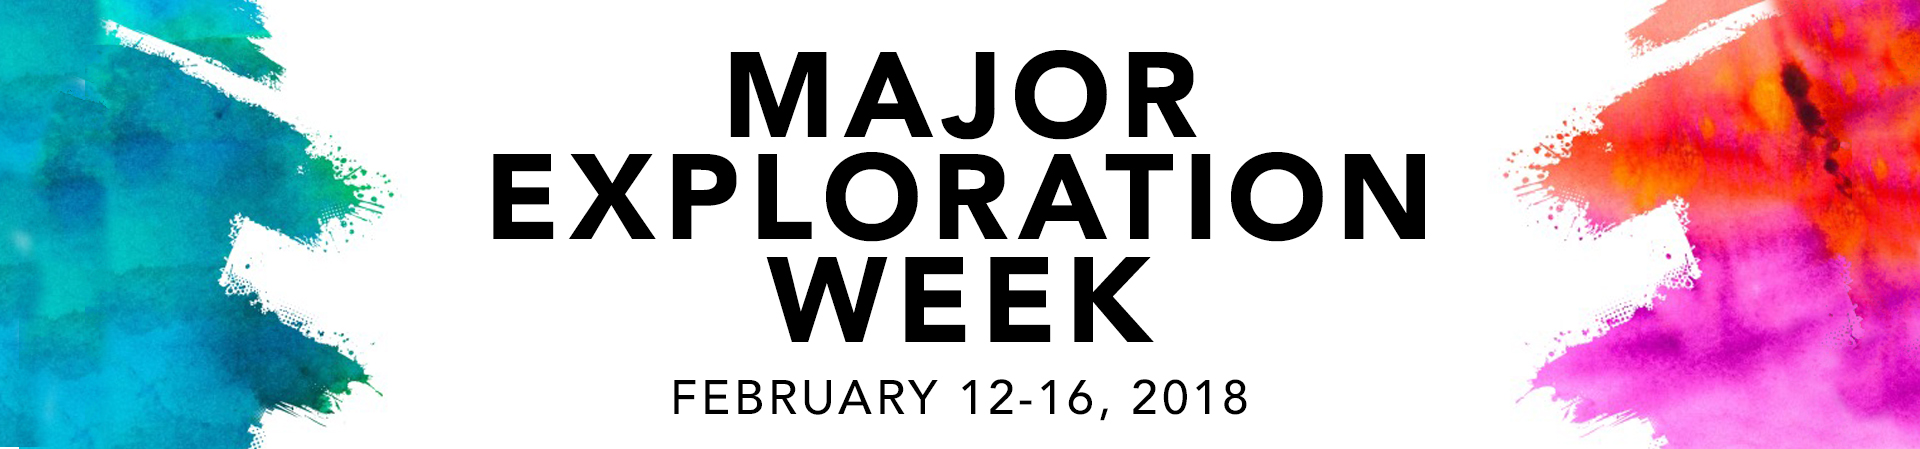 Major exploration week